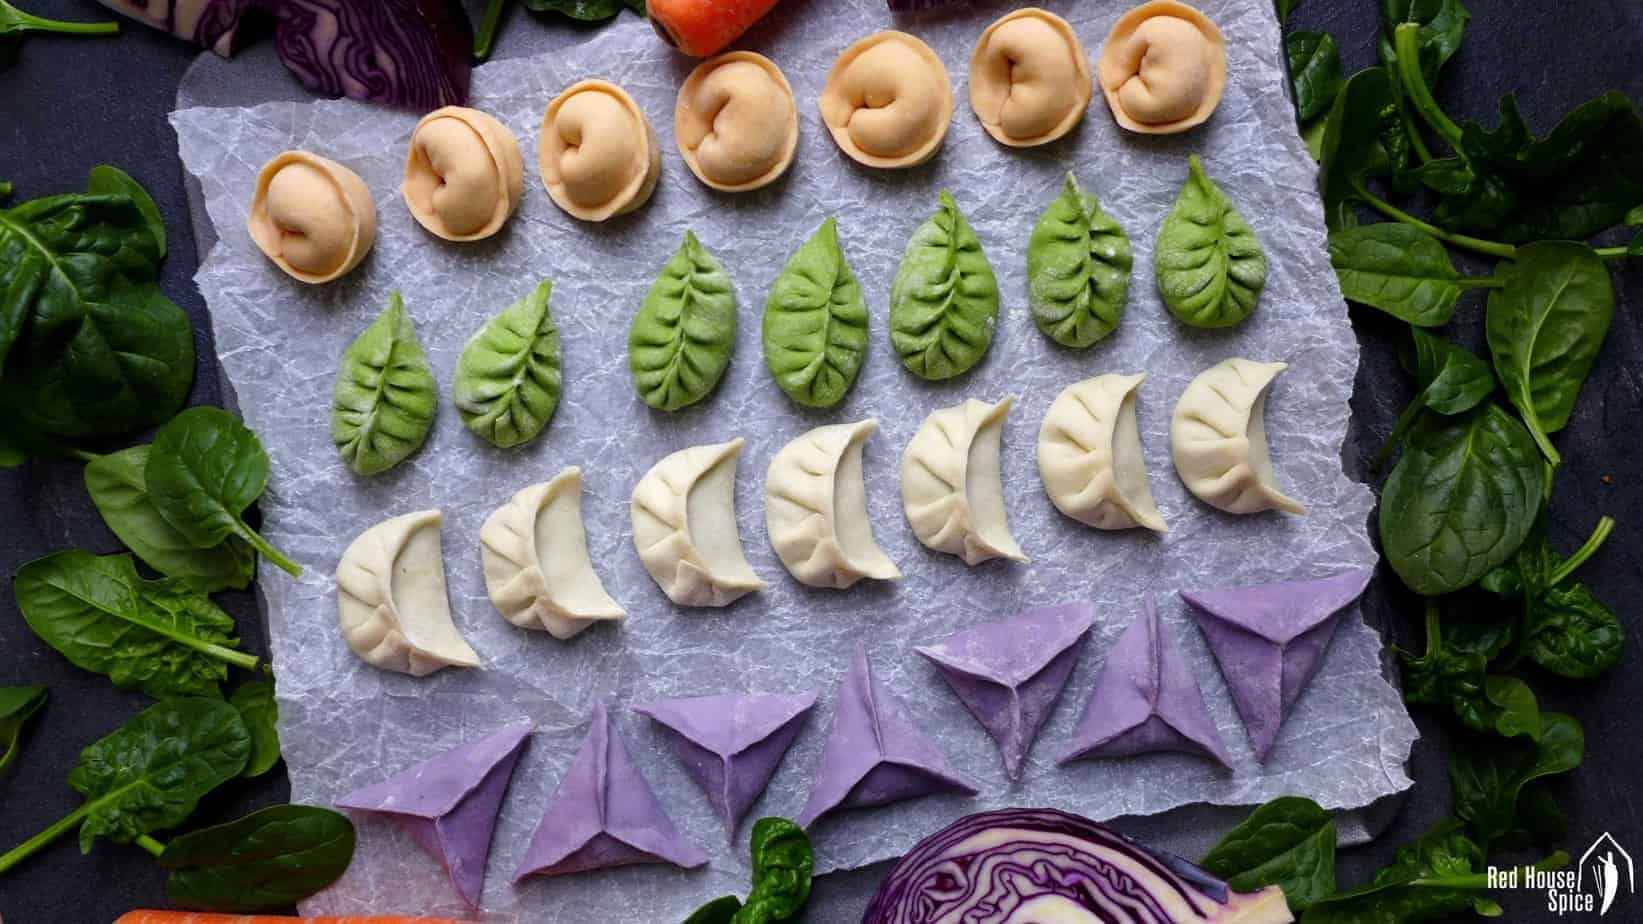 Lines of dumplings in white, green, orange and purple colour